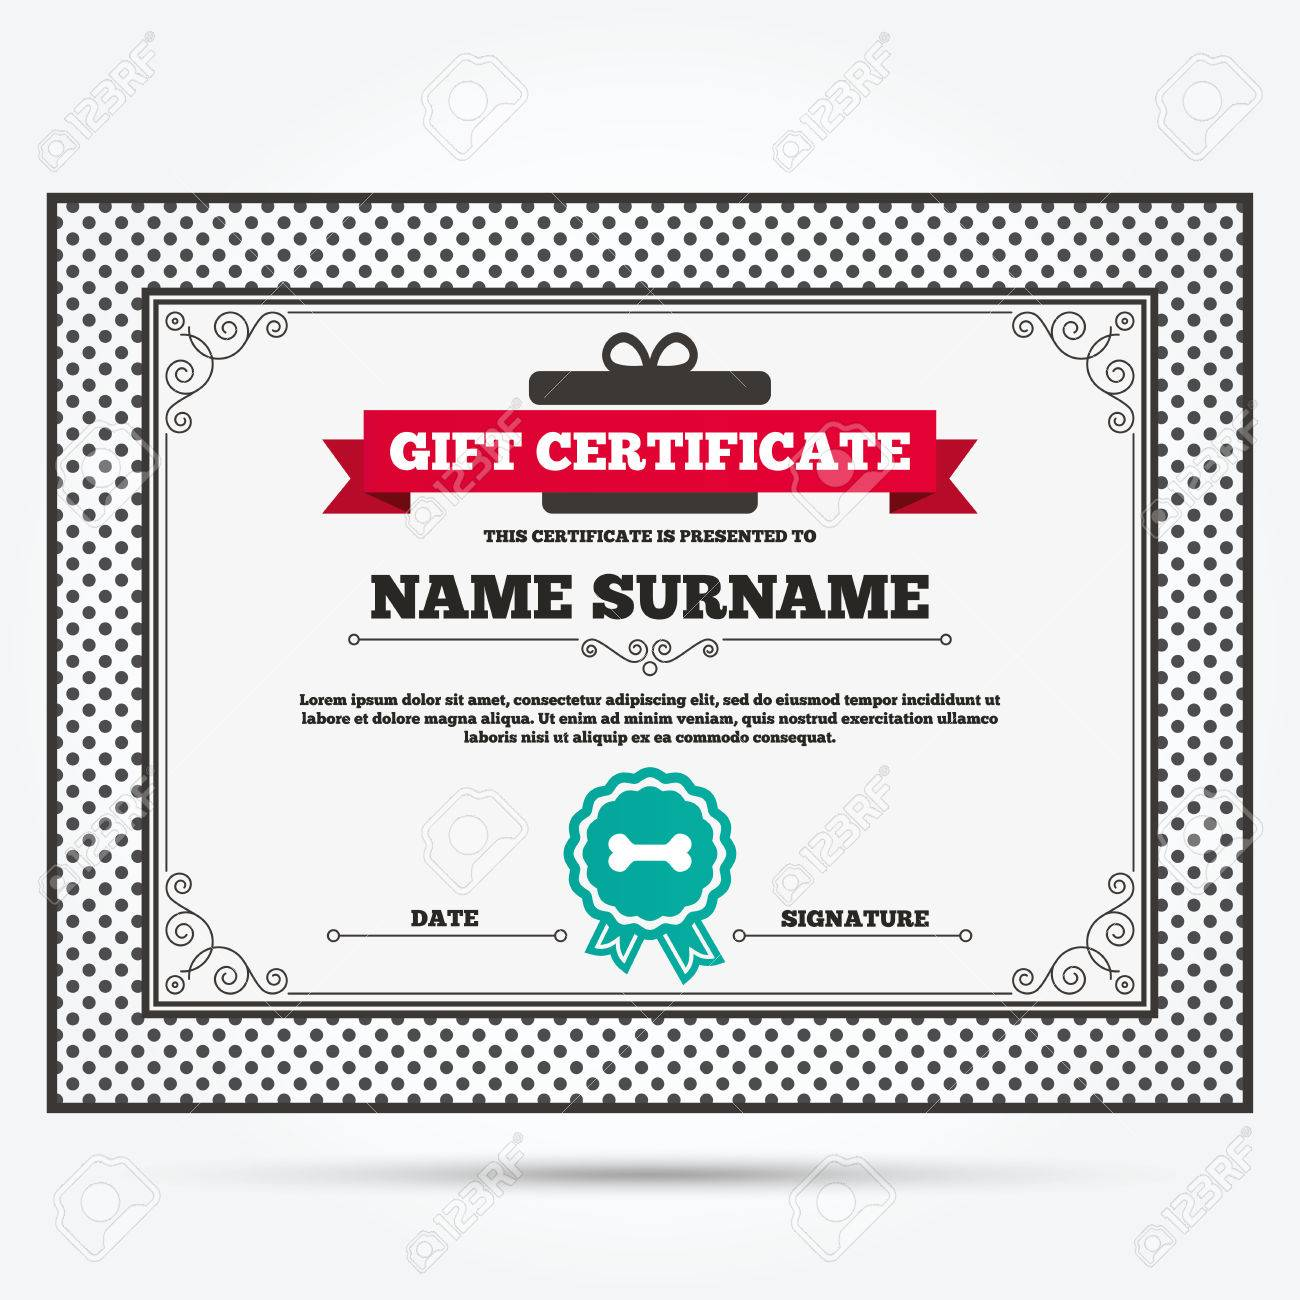 Gift certificate template with dogs images certificate design gift certificate dog bone sign icon pets food symbol template gift certificate dog bone sign icon yelopaper Gallery